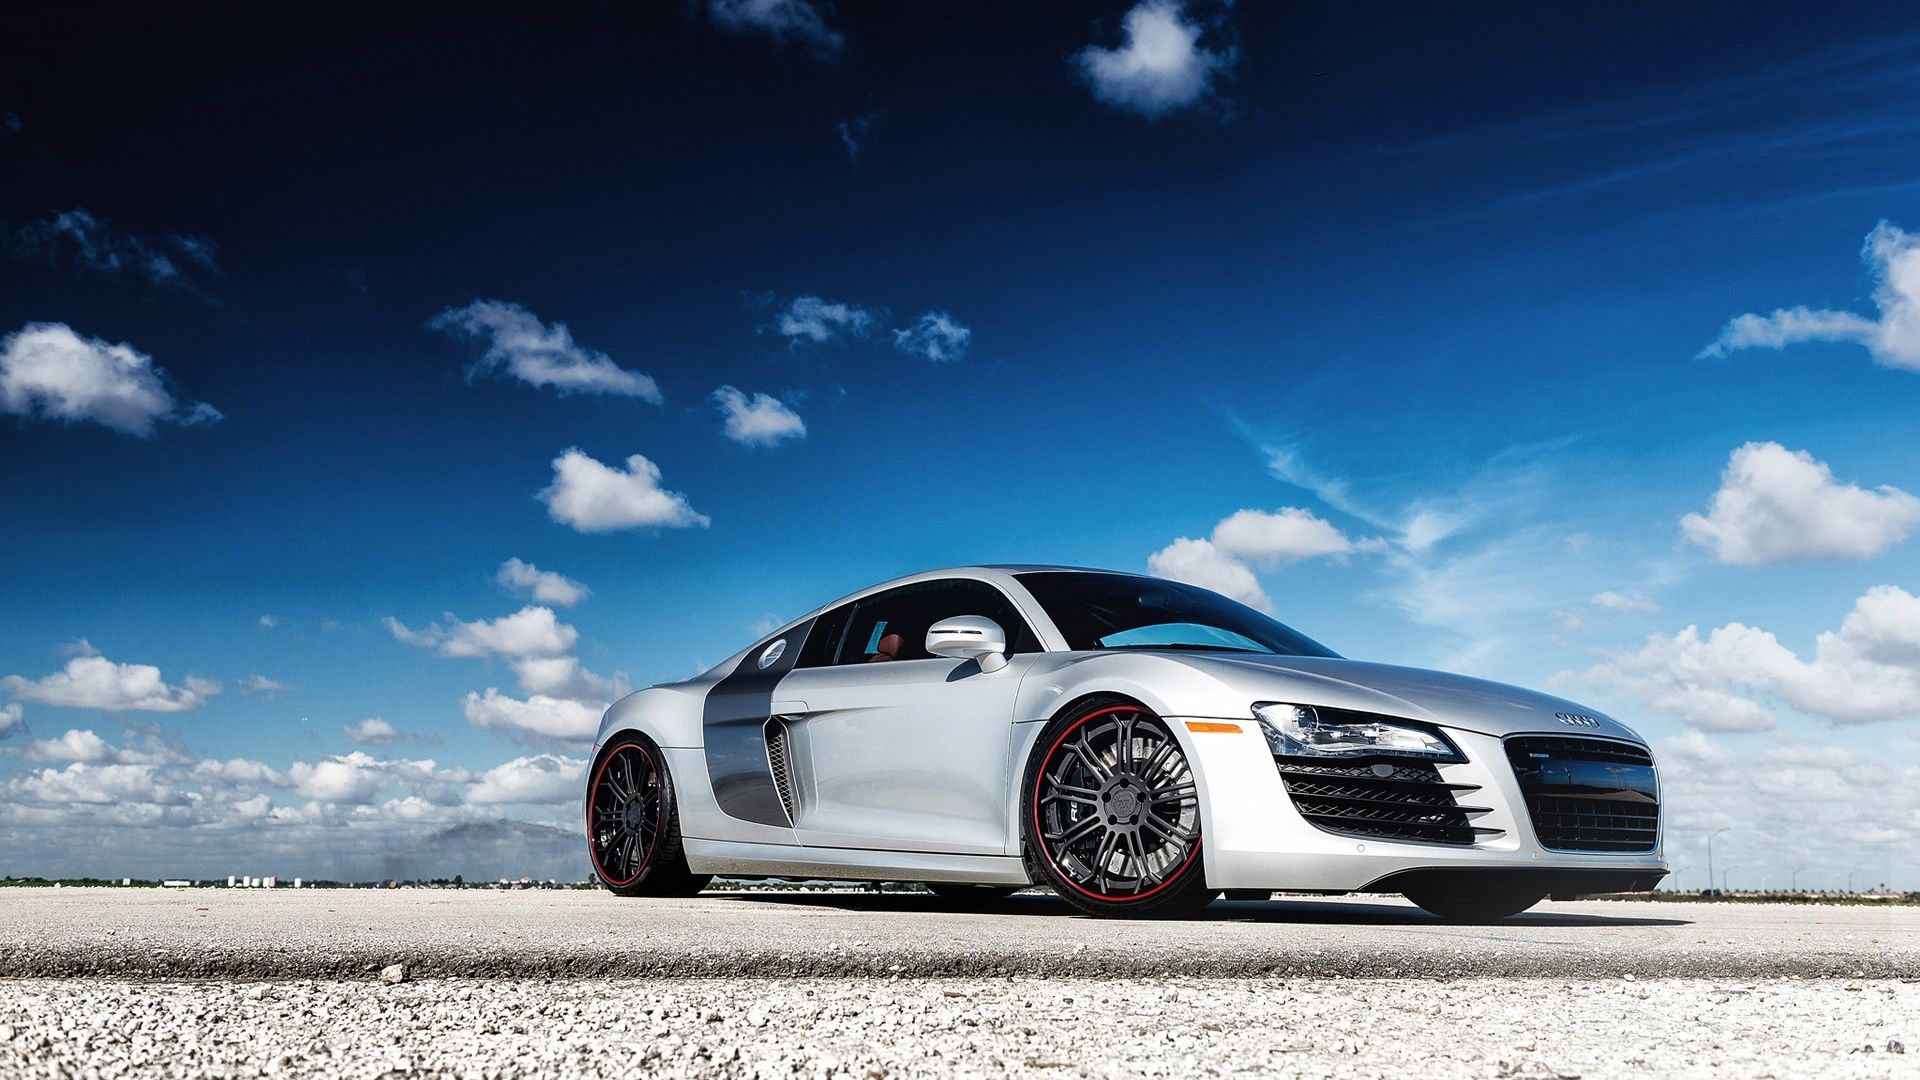 Mac Imac Cars Wallpapers Desktop Backgrounds Hd Pictures And 1920 1080 Car Wallpapers For Mac 47 Wall Audi R8 Wallpaper Sports Car Wallpaper Car Wallpapers